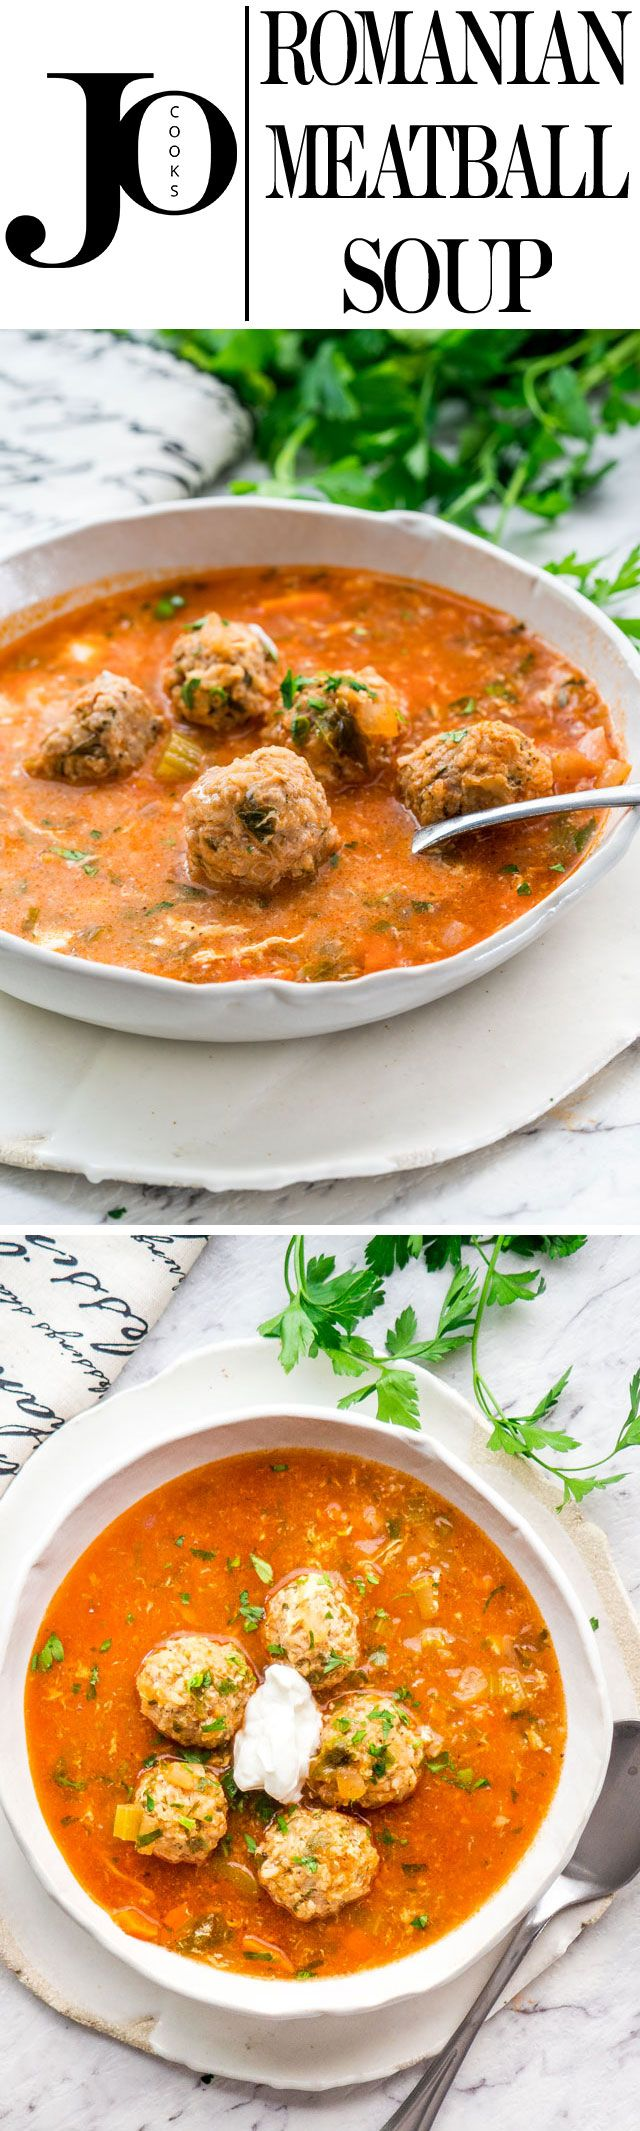 Romanian Meatball Soup (Ciorba de Perisoare) | Jo Cooks | this is my mom's recipe for the most delicious meatball soup out there.